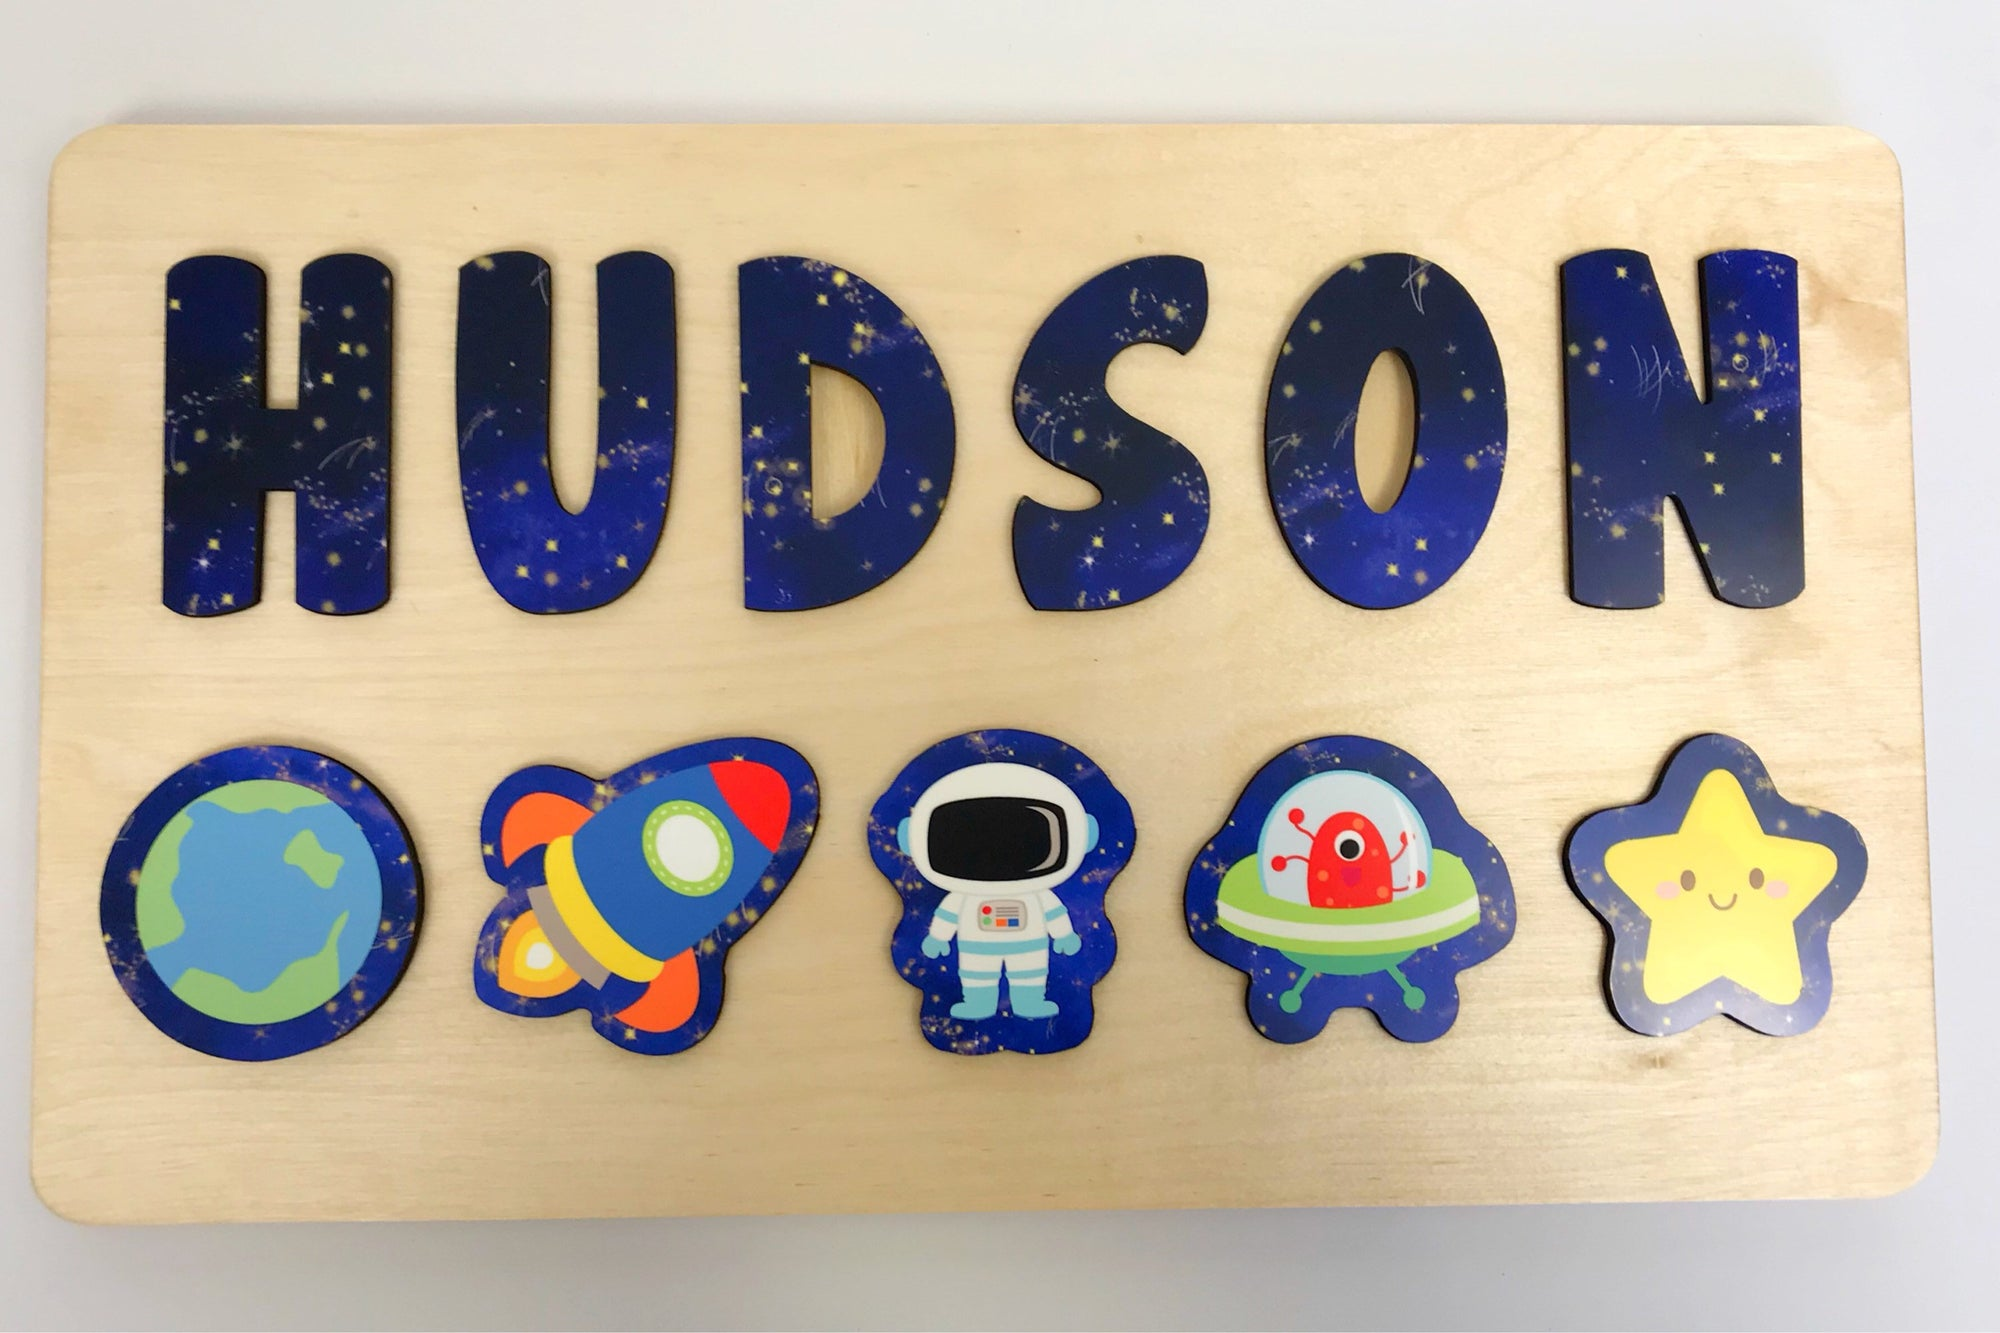 Space Wooden Name Puzzle for Toddler, Gift for Kids, Kids Puzzle with Astronaut Spaceship Alien and Star